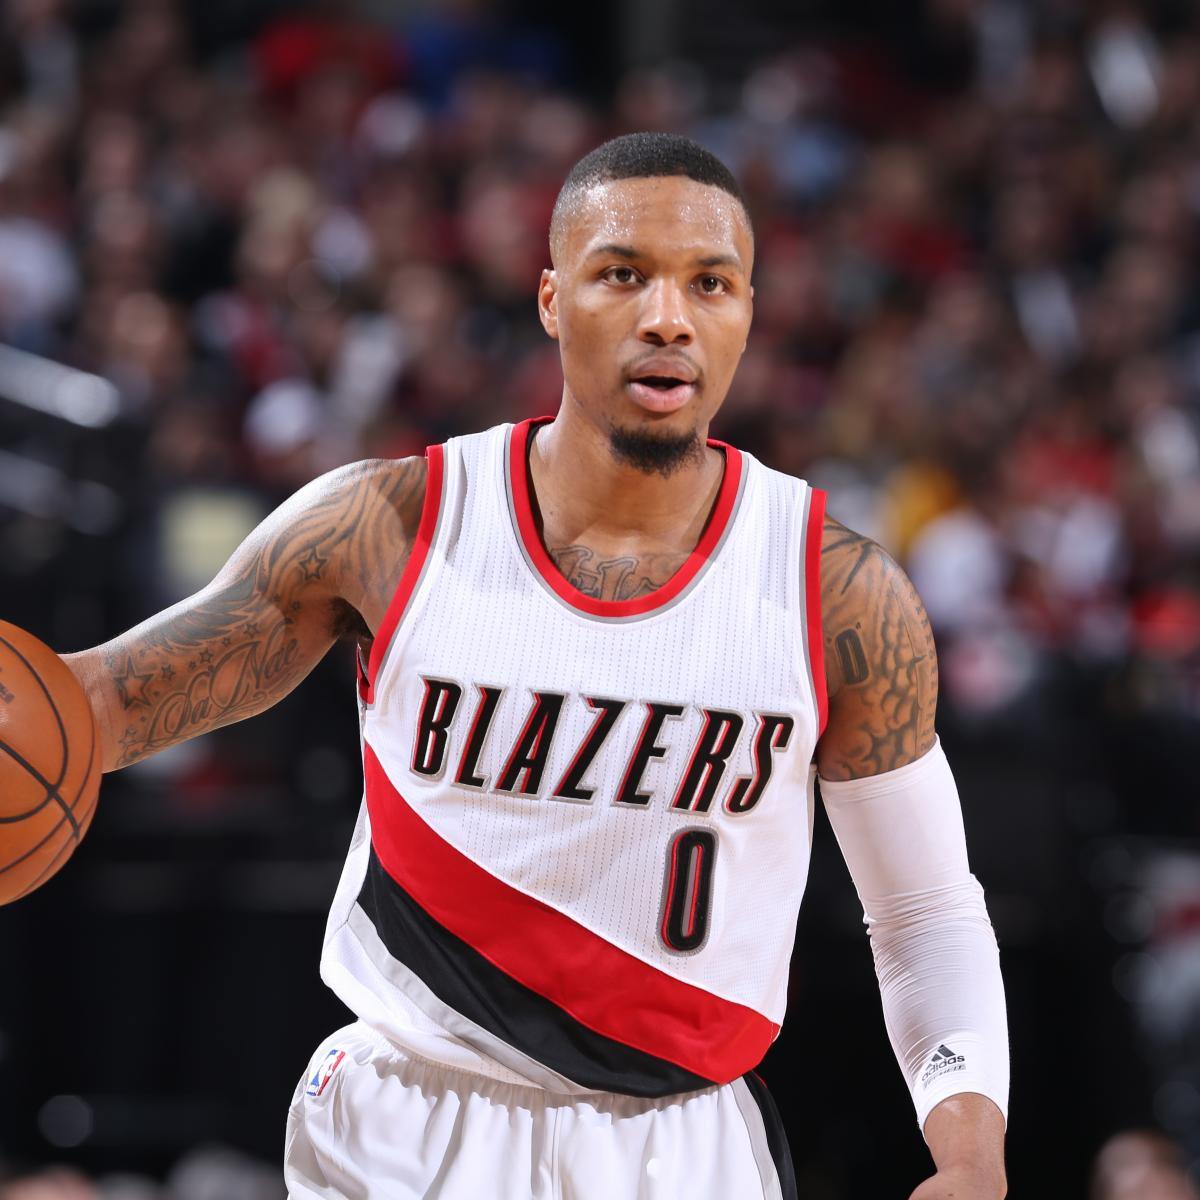 Portland Blazers Game: Damian Lillard Injury: Updates On Trail Blazers Star's